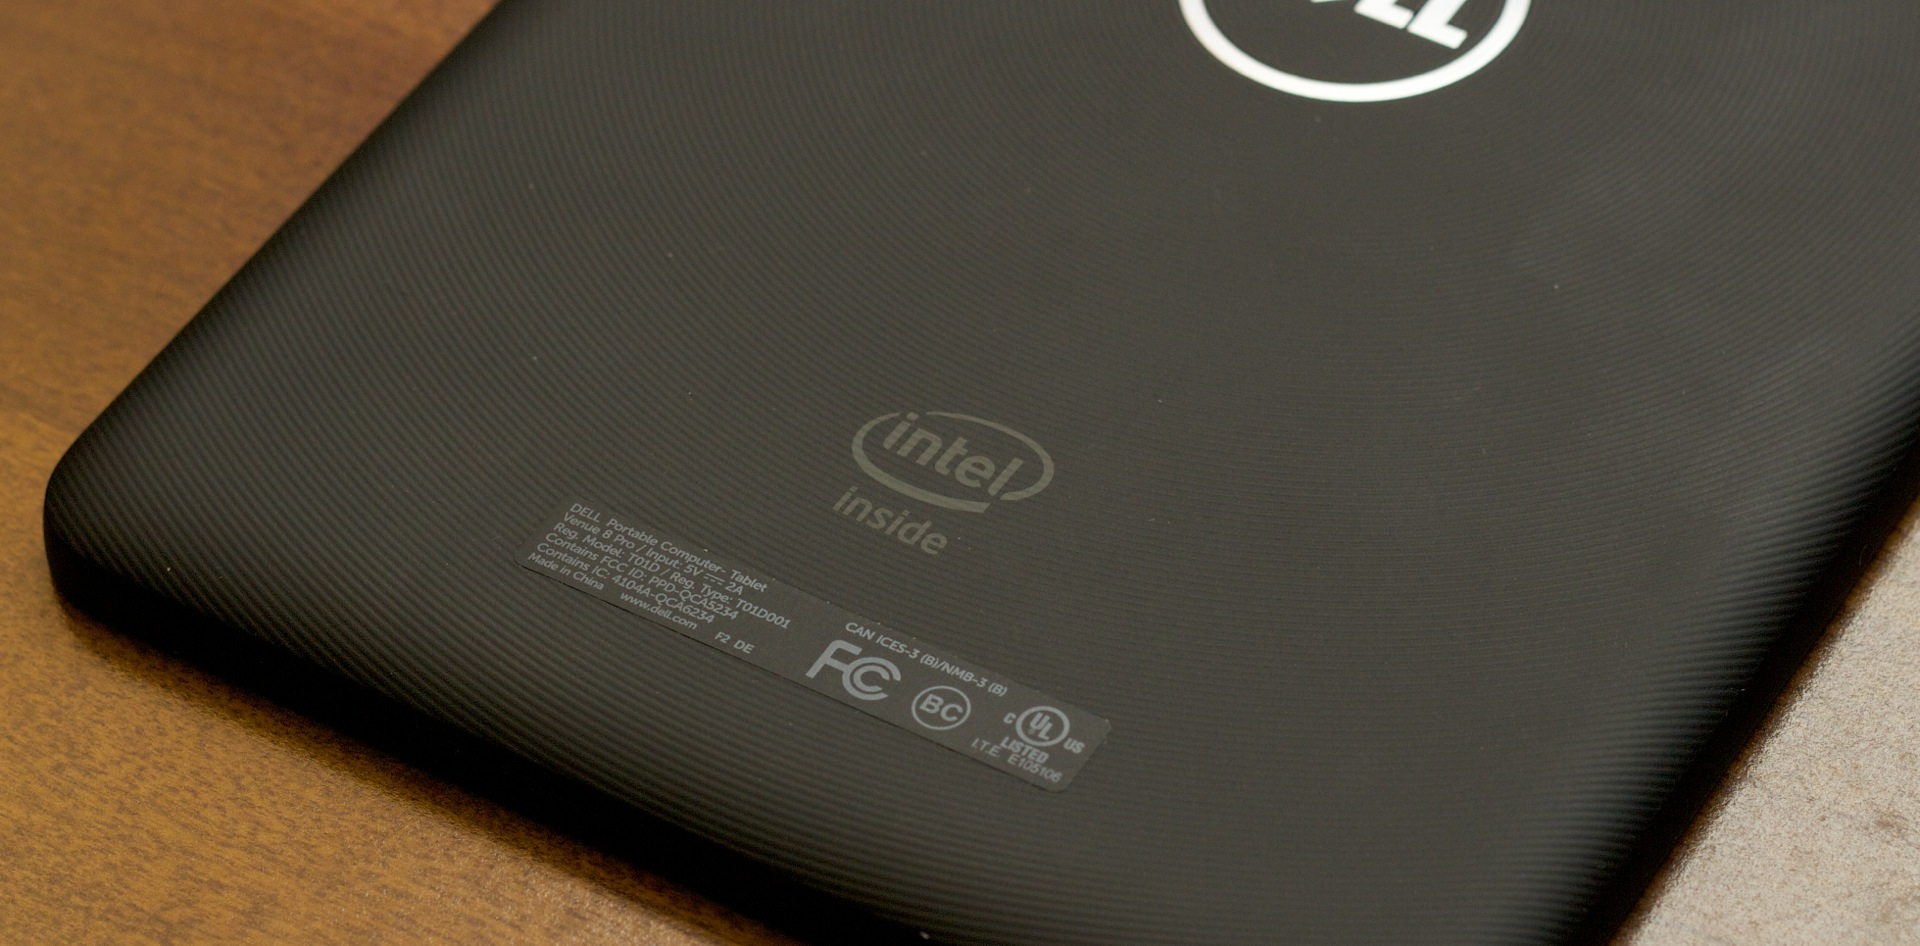 Intel's branding is just as prominent on tablets as it is on laptops and desktops.